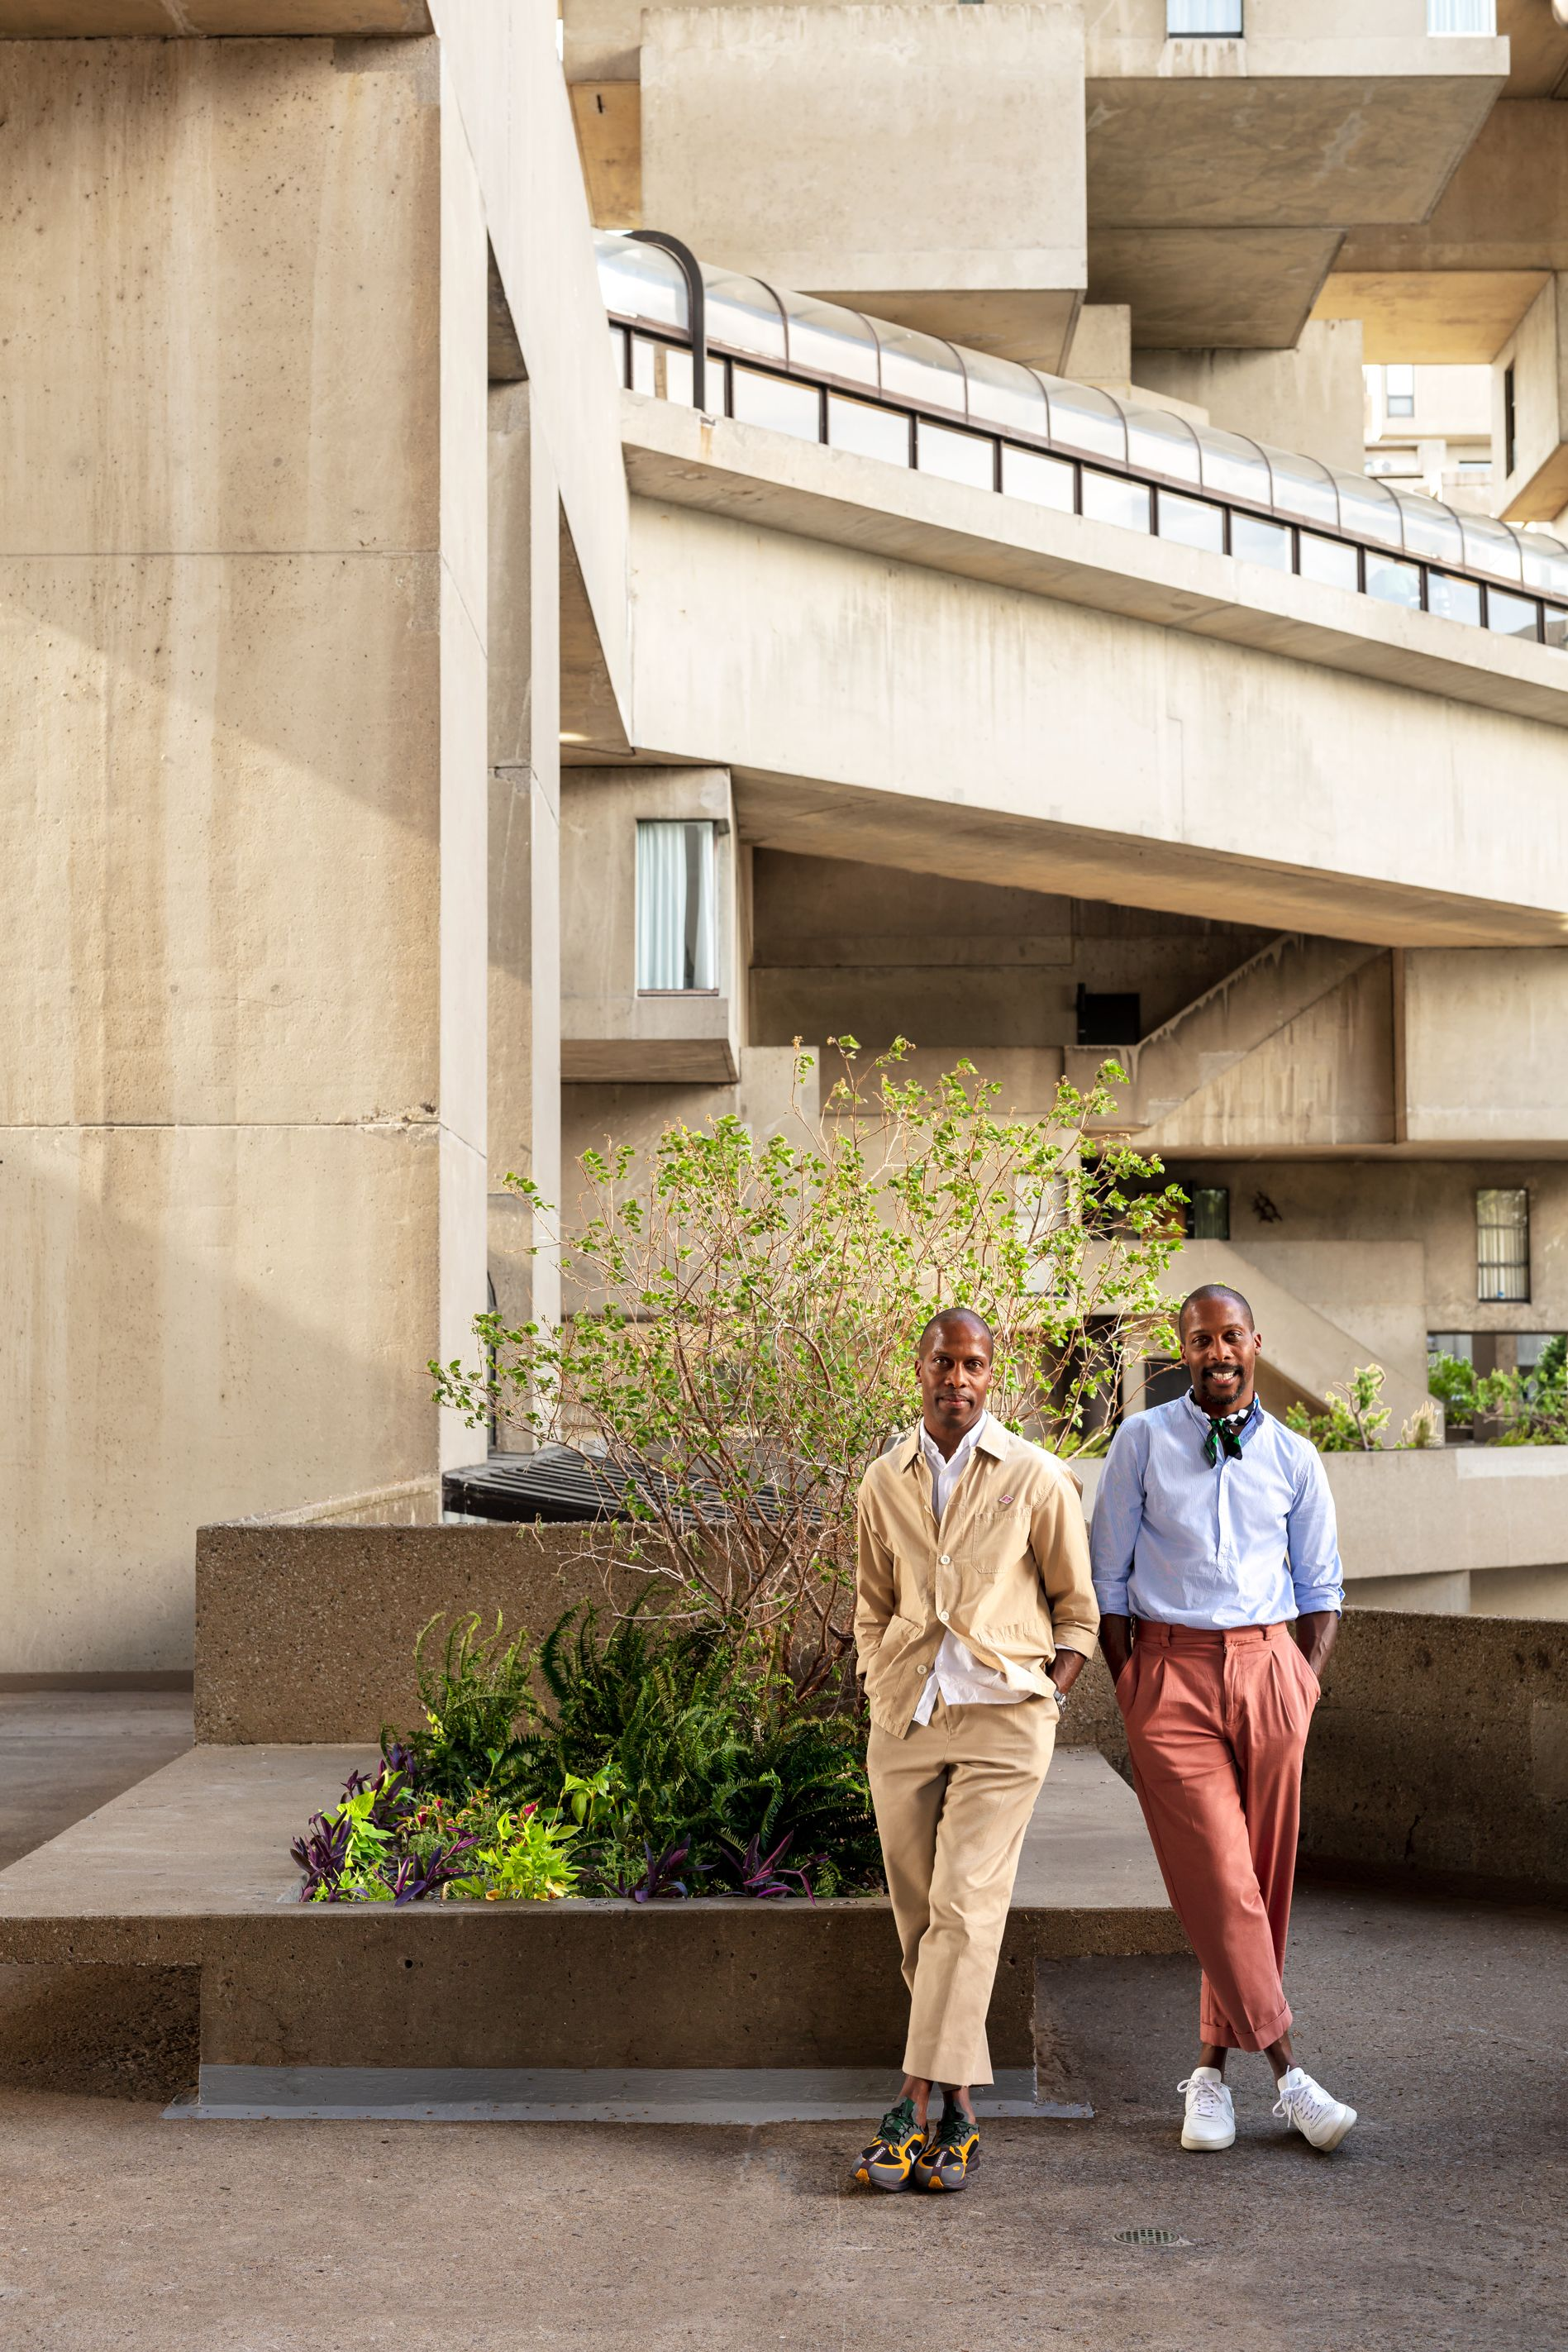 See How These Identical Twins Live in Montreal's Famed Brutalist Apartments